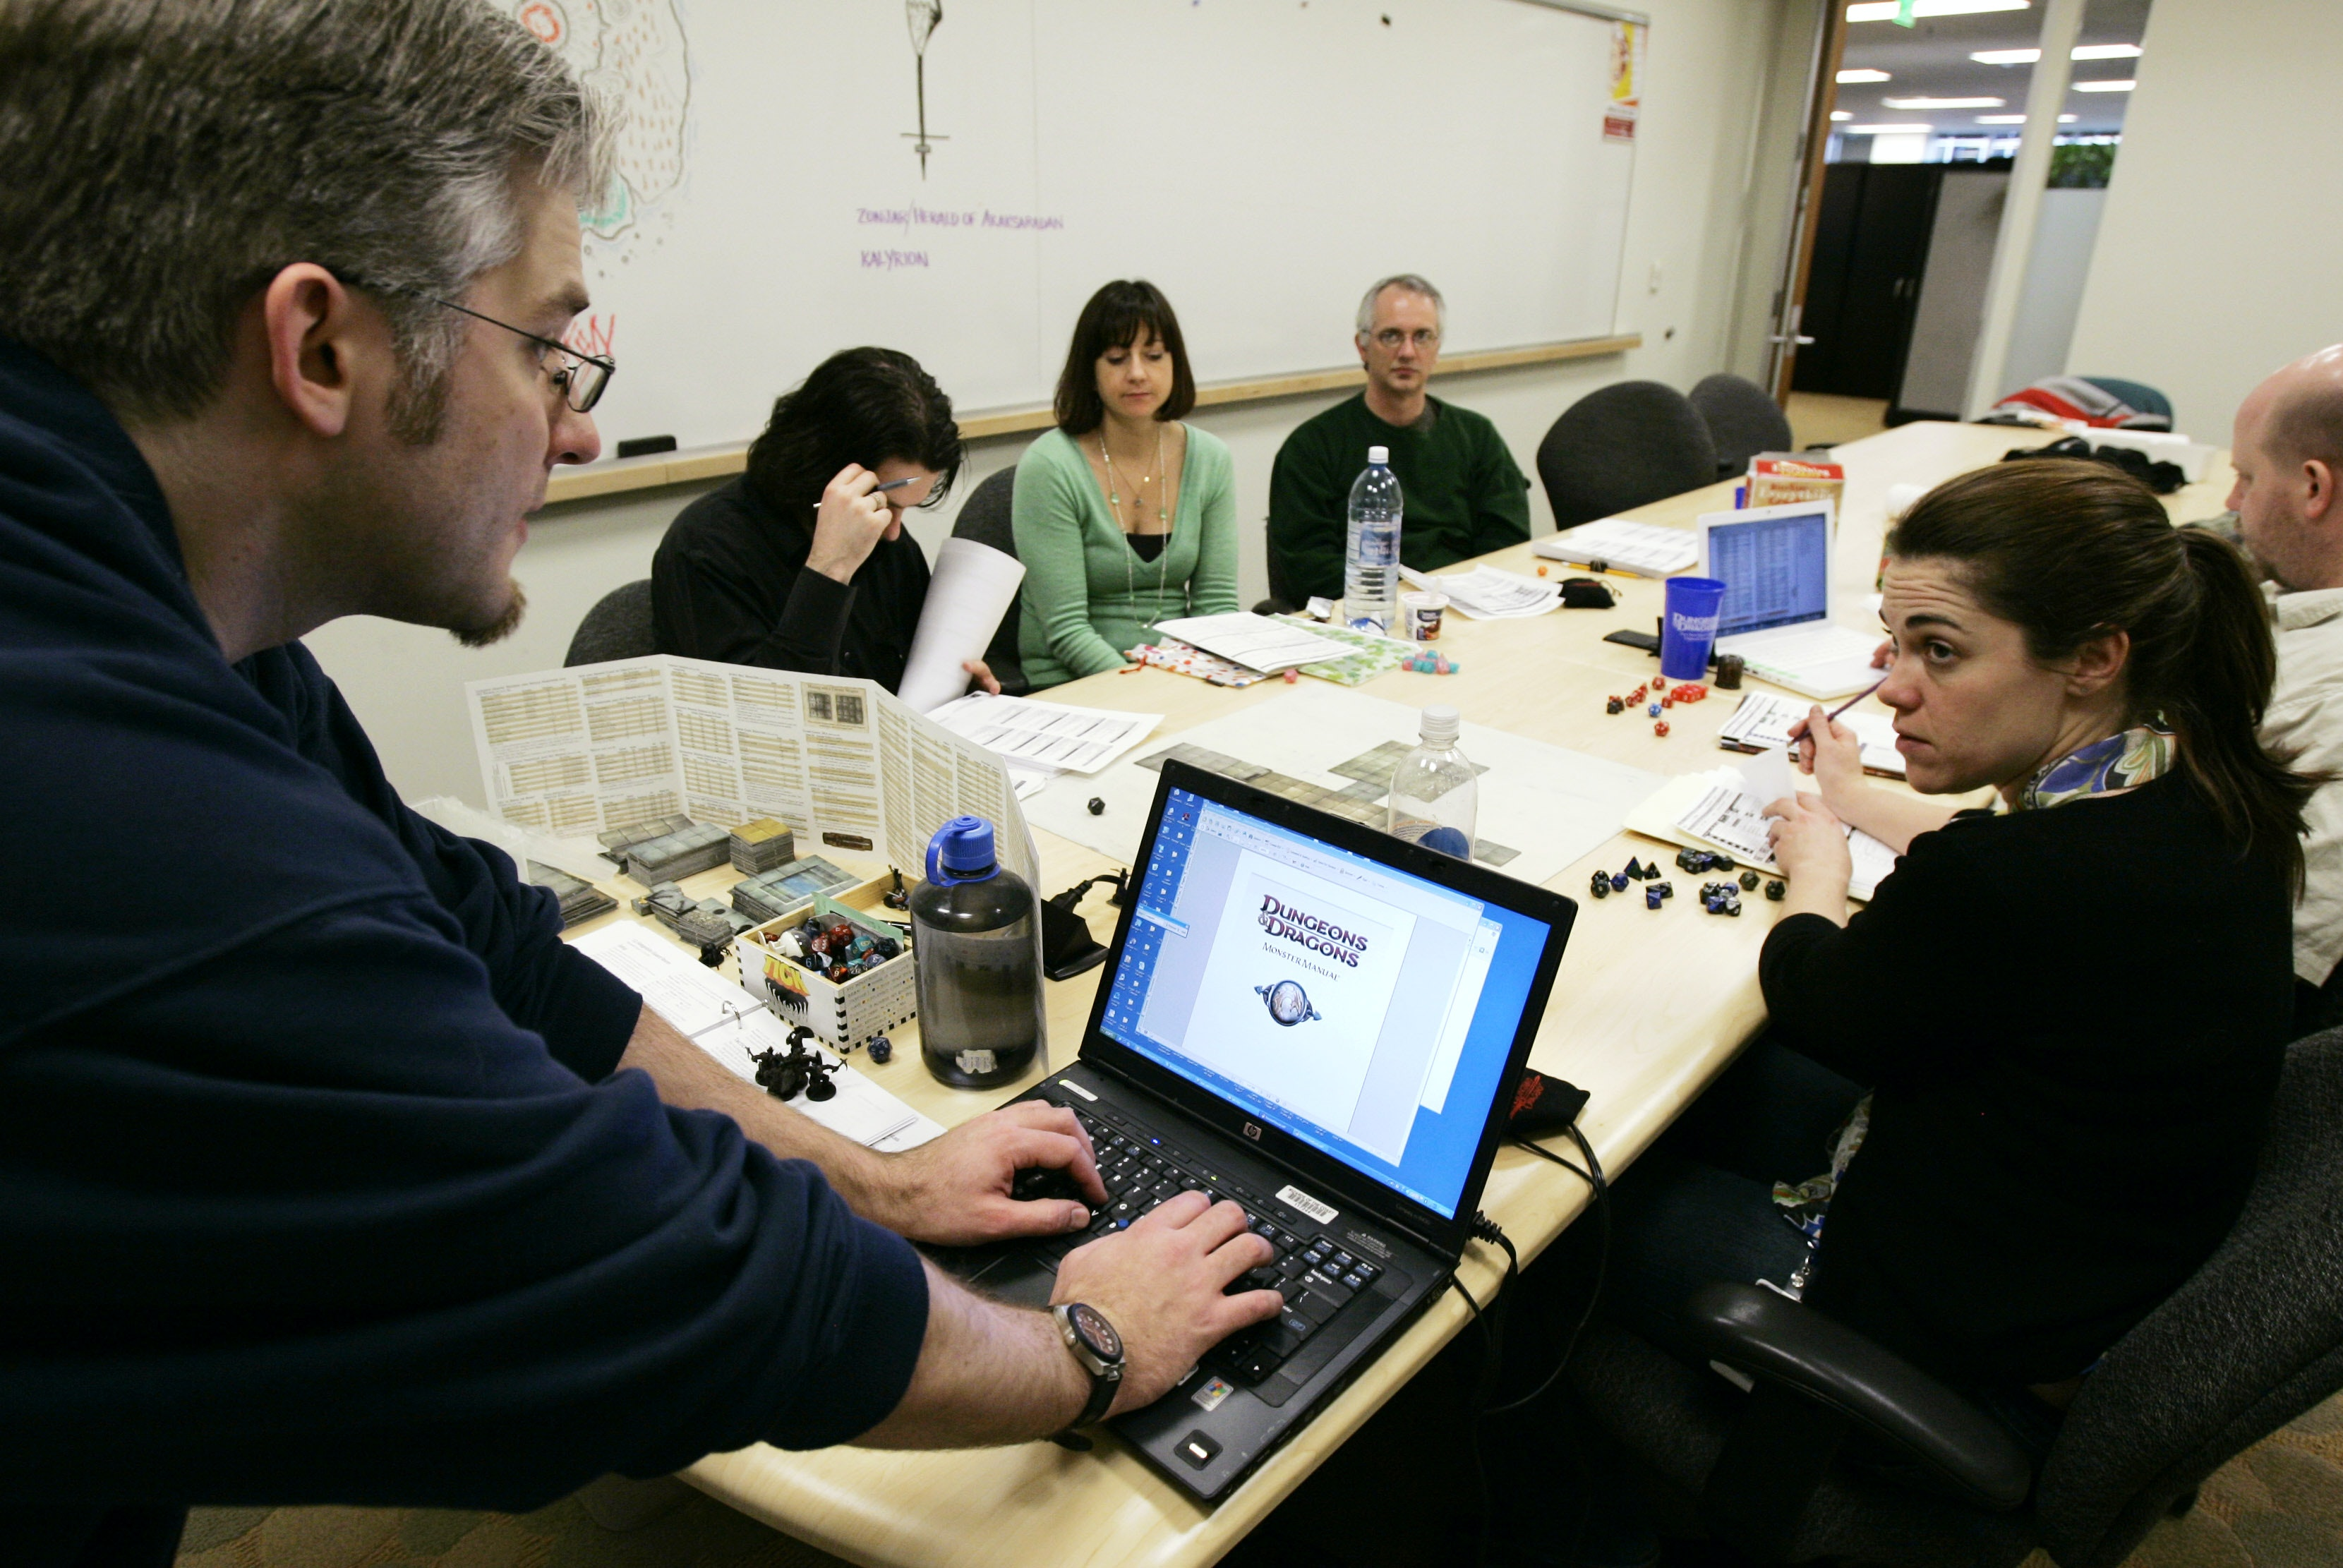 Many role-playing games get people together around a computer to explore a collective adventure.